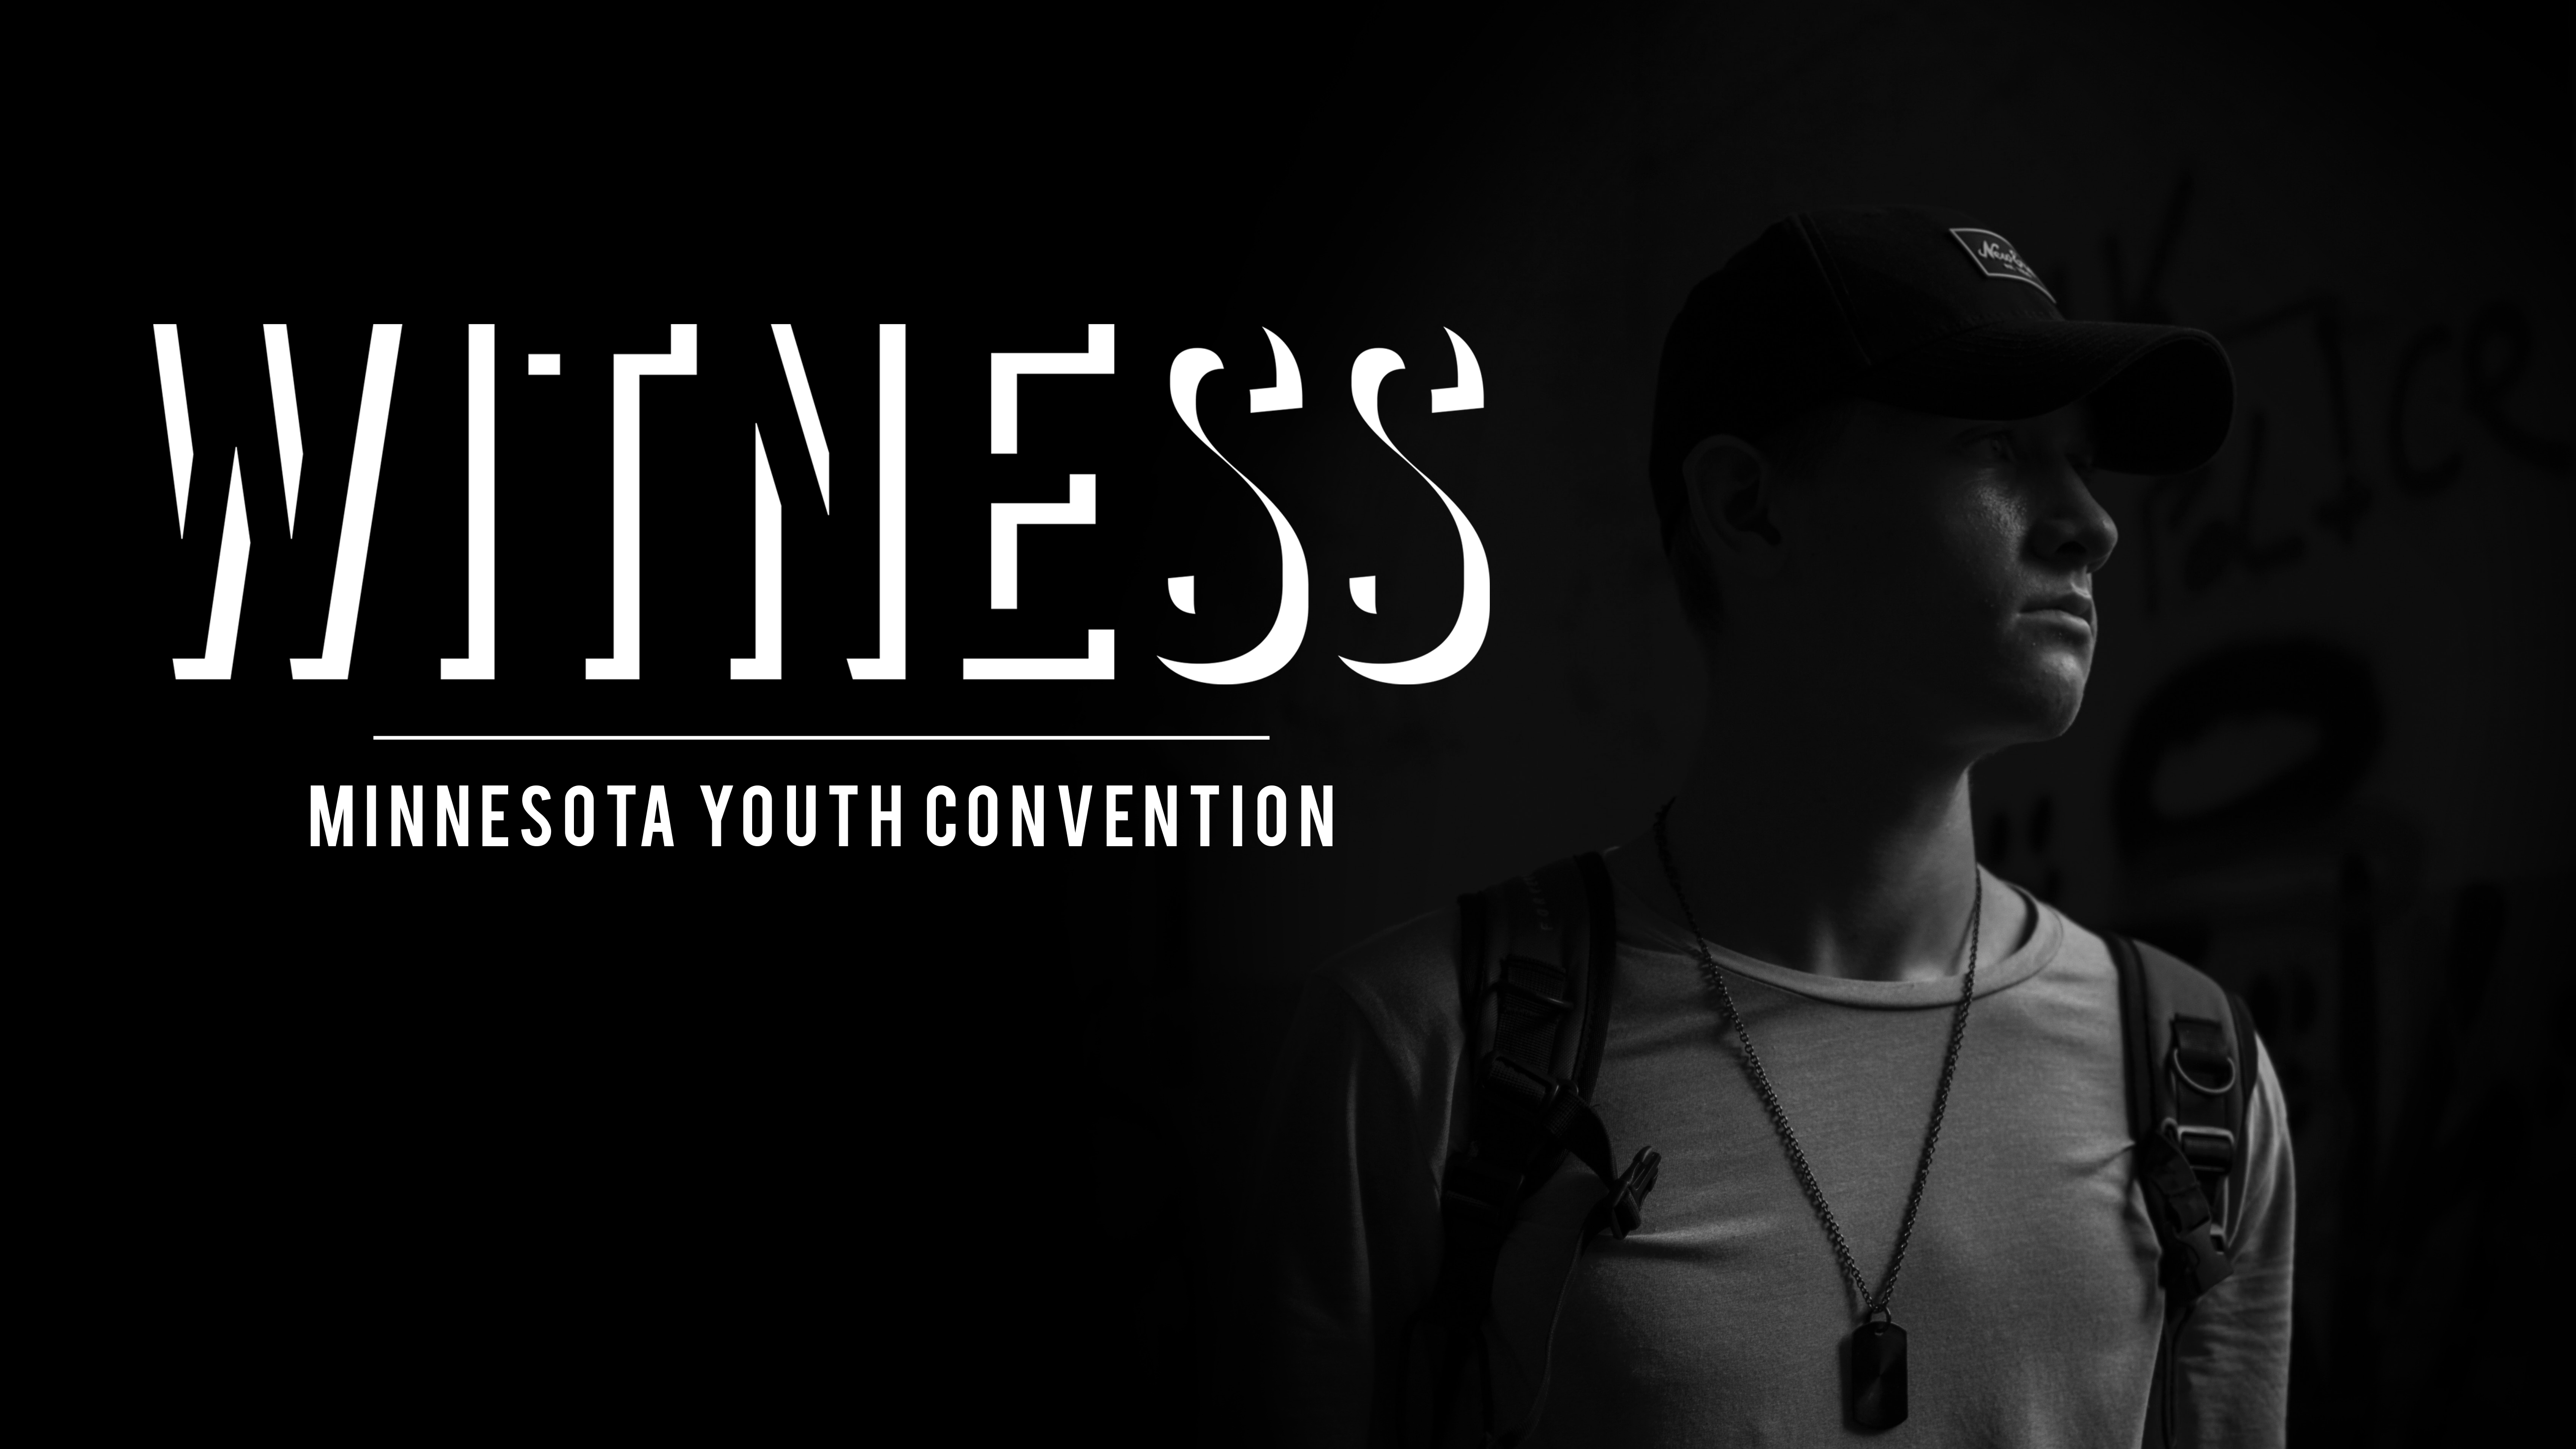 Minnesota Youth Convention